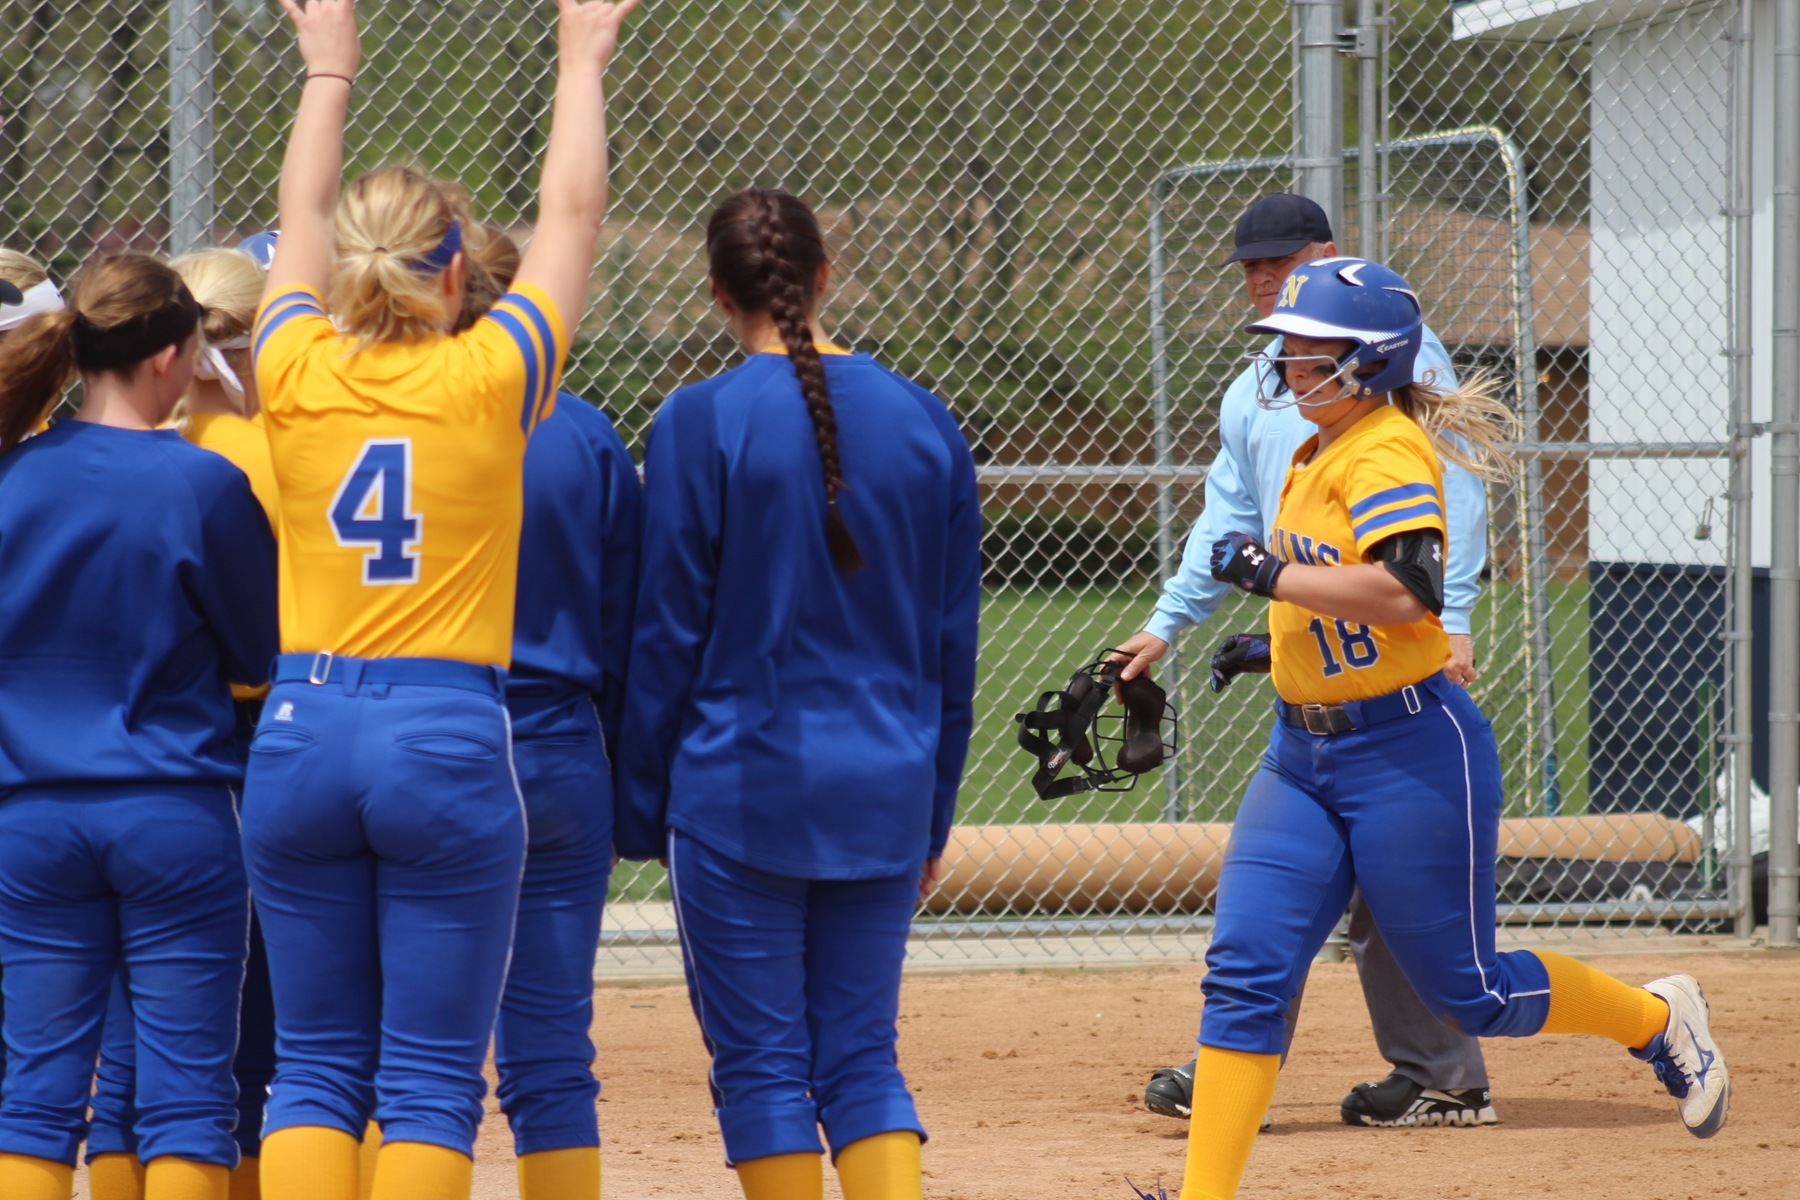 NIACC players celebrate as Shelby Low approaches home plate after hitting a solo home run in the third inning.